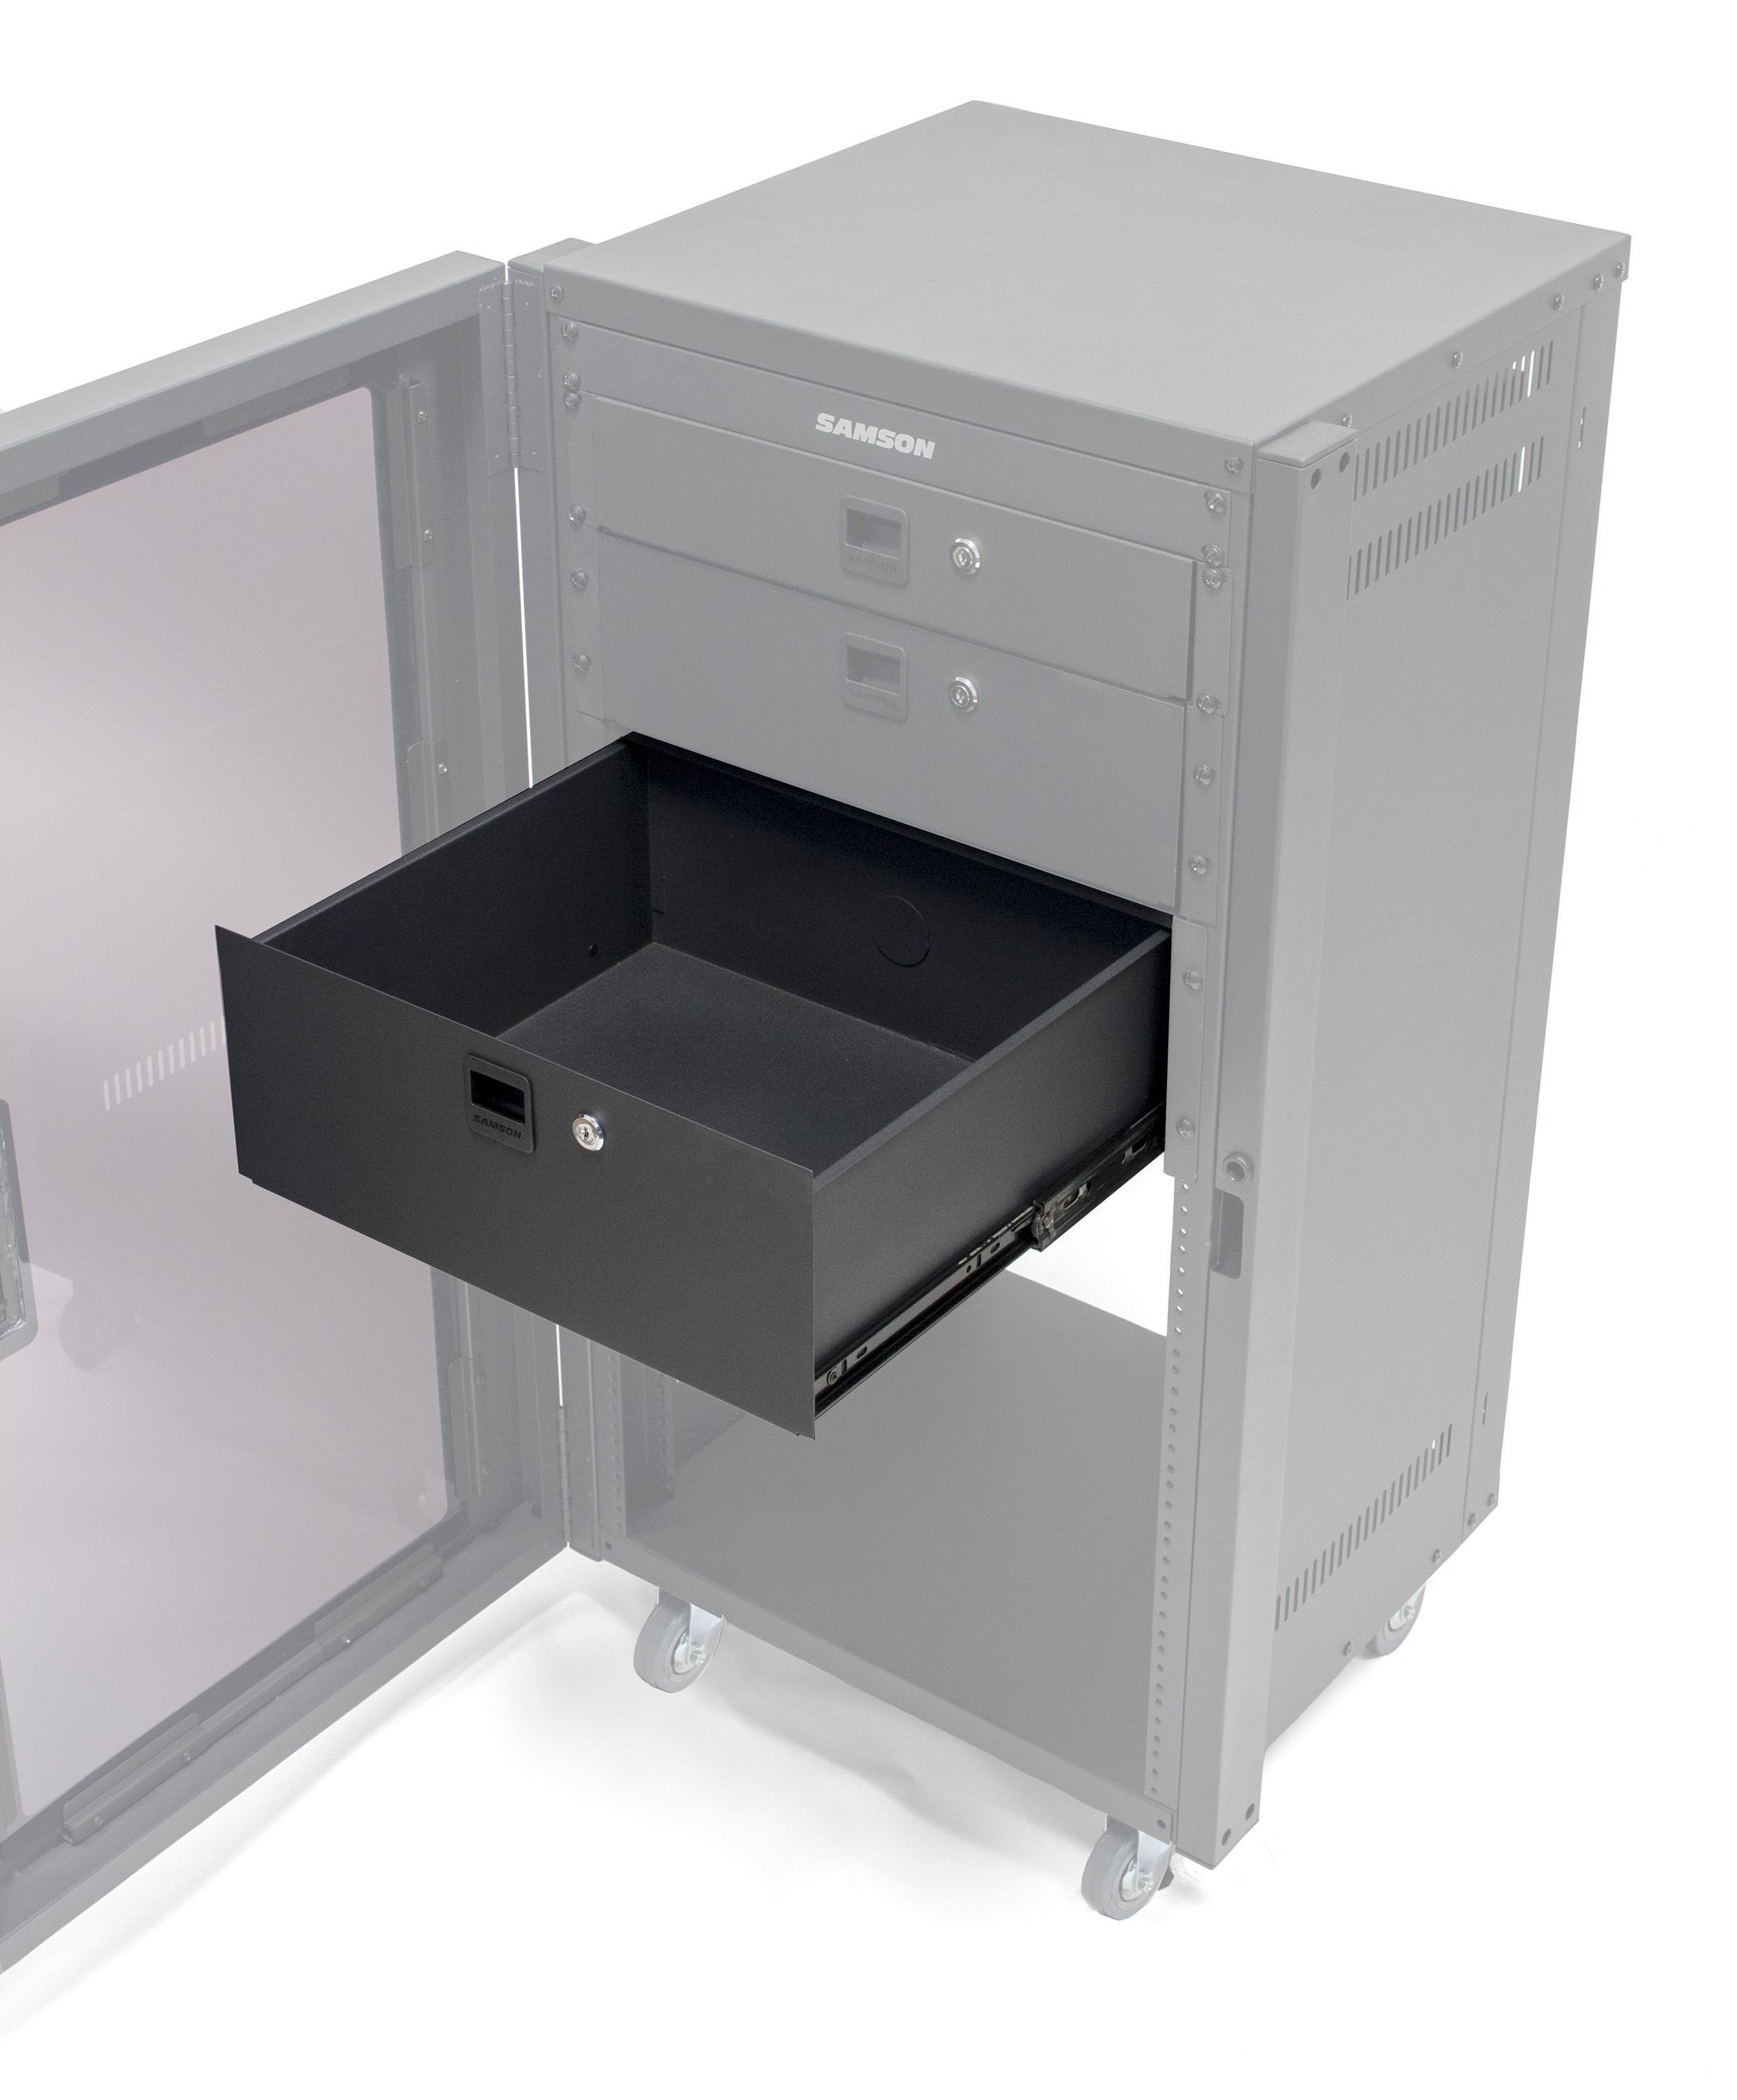 meijer white pk loaded drawers baby spring latch release cabinet health com uts drawer latches n safety product